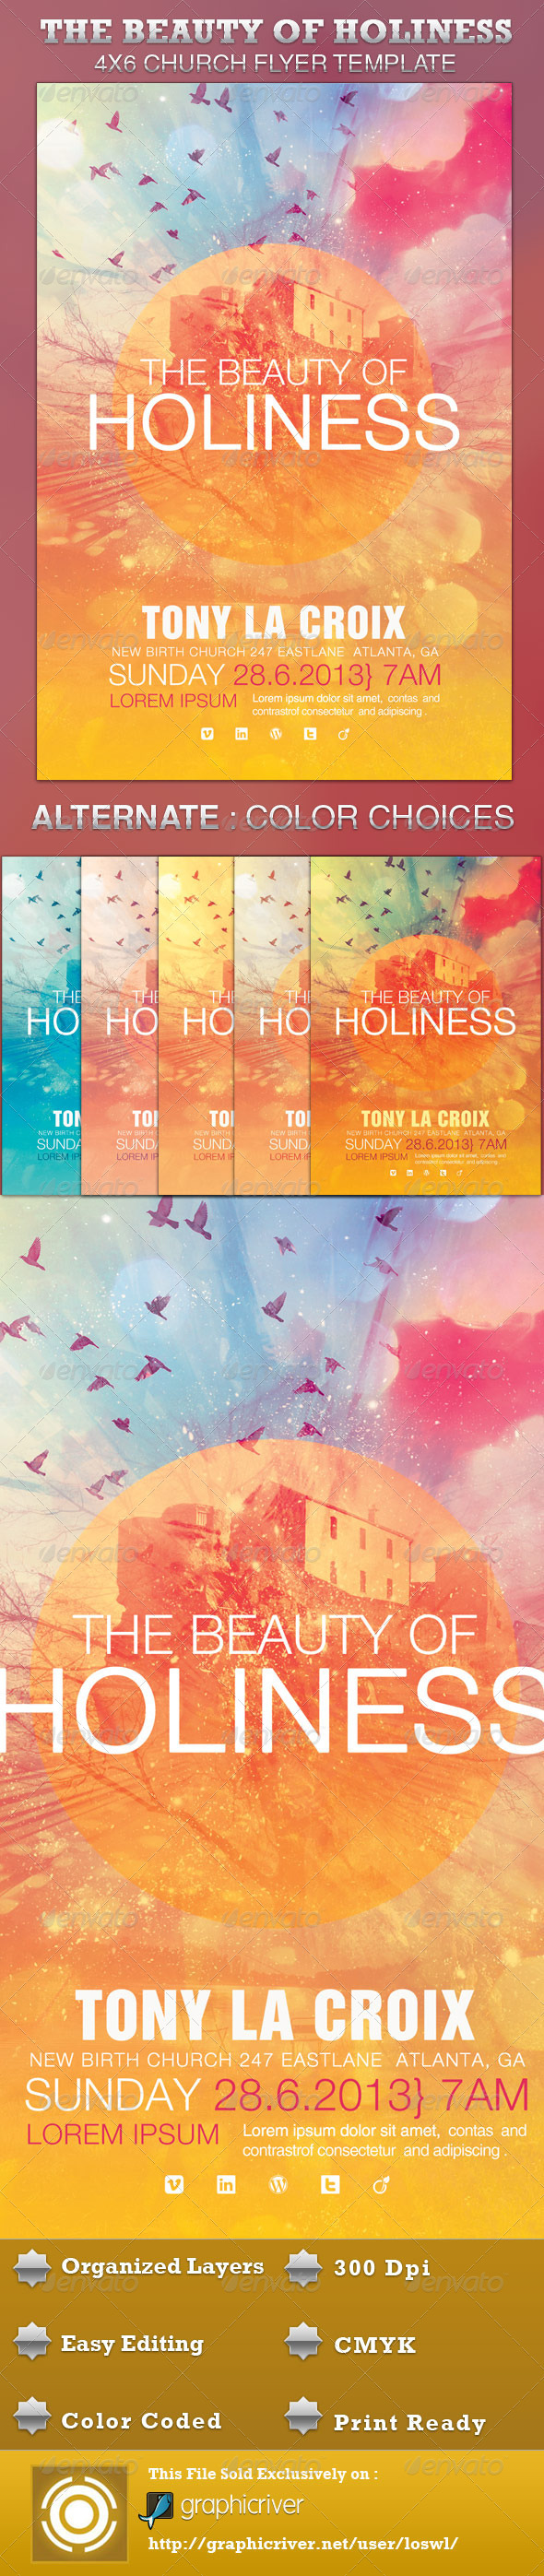 GraphicRiver The Beauty of Holiness Church Flyer Template 3897934